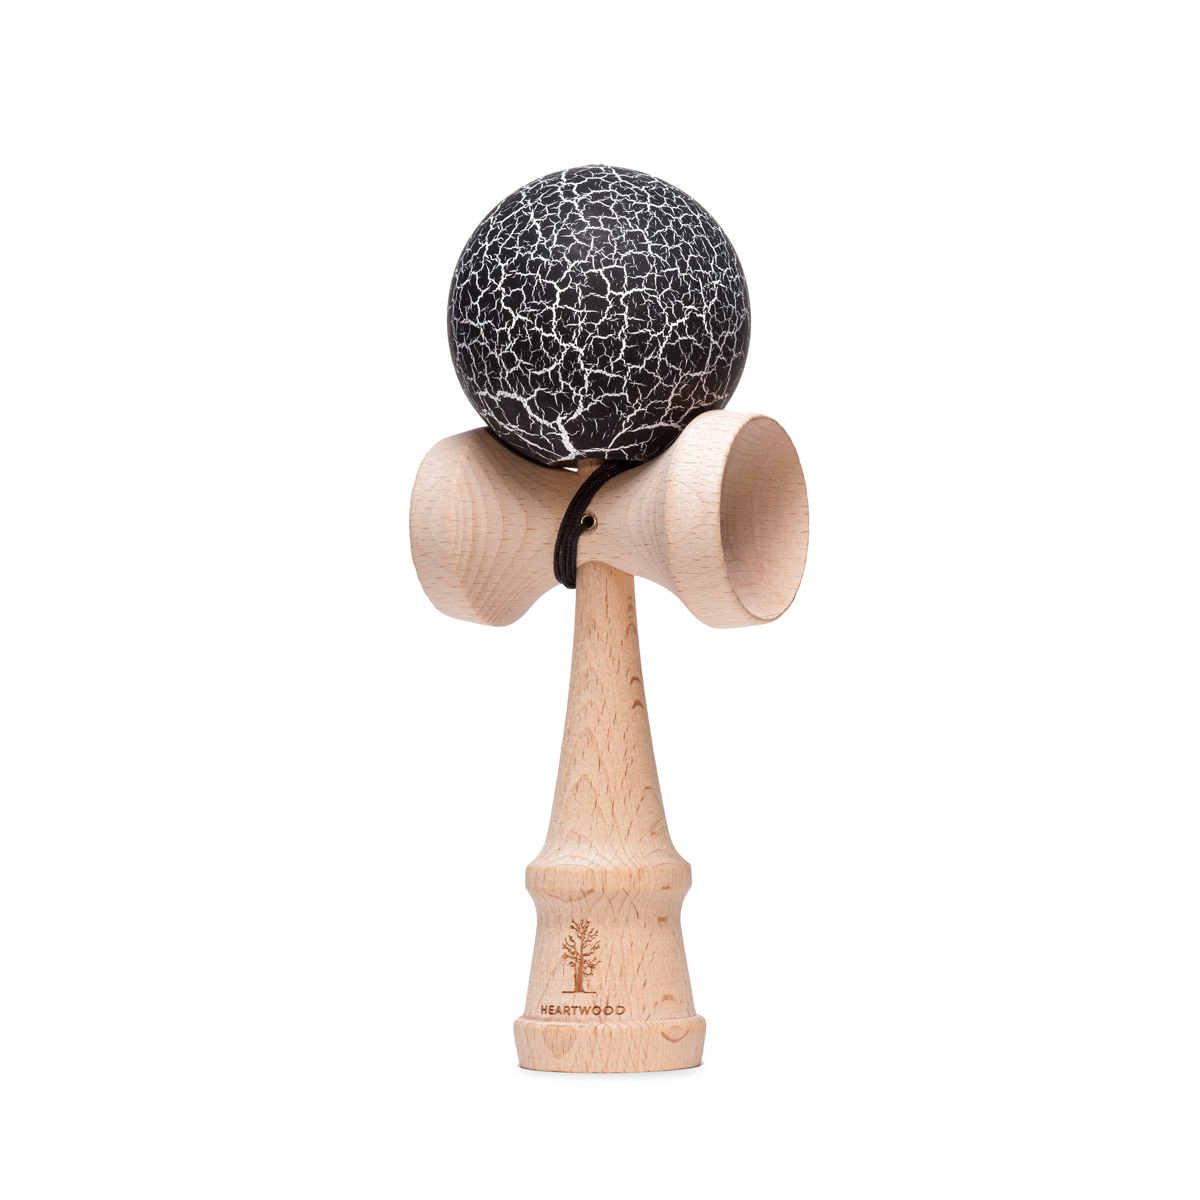 Heartwood Kendama Grunge Charcoal Black